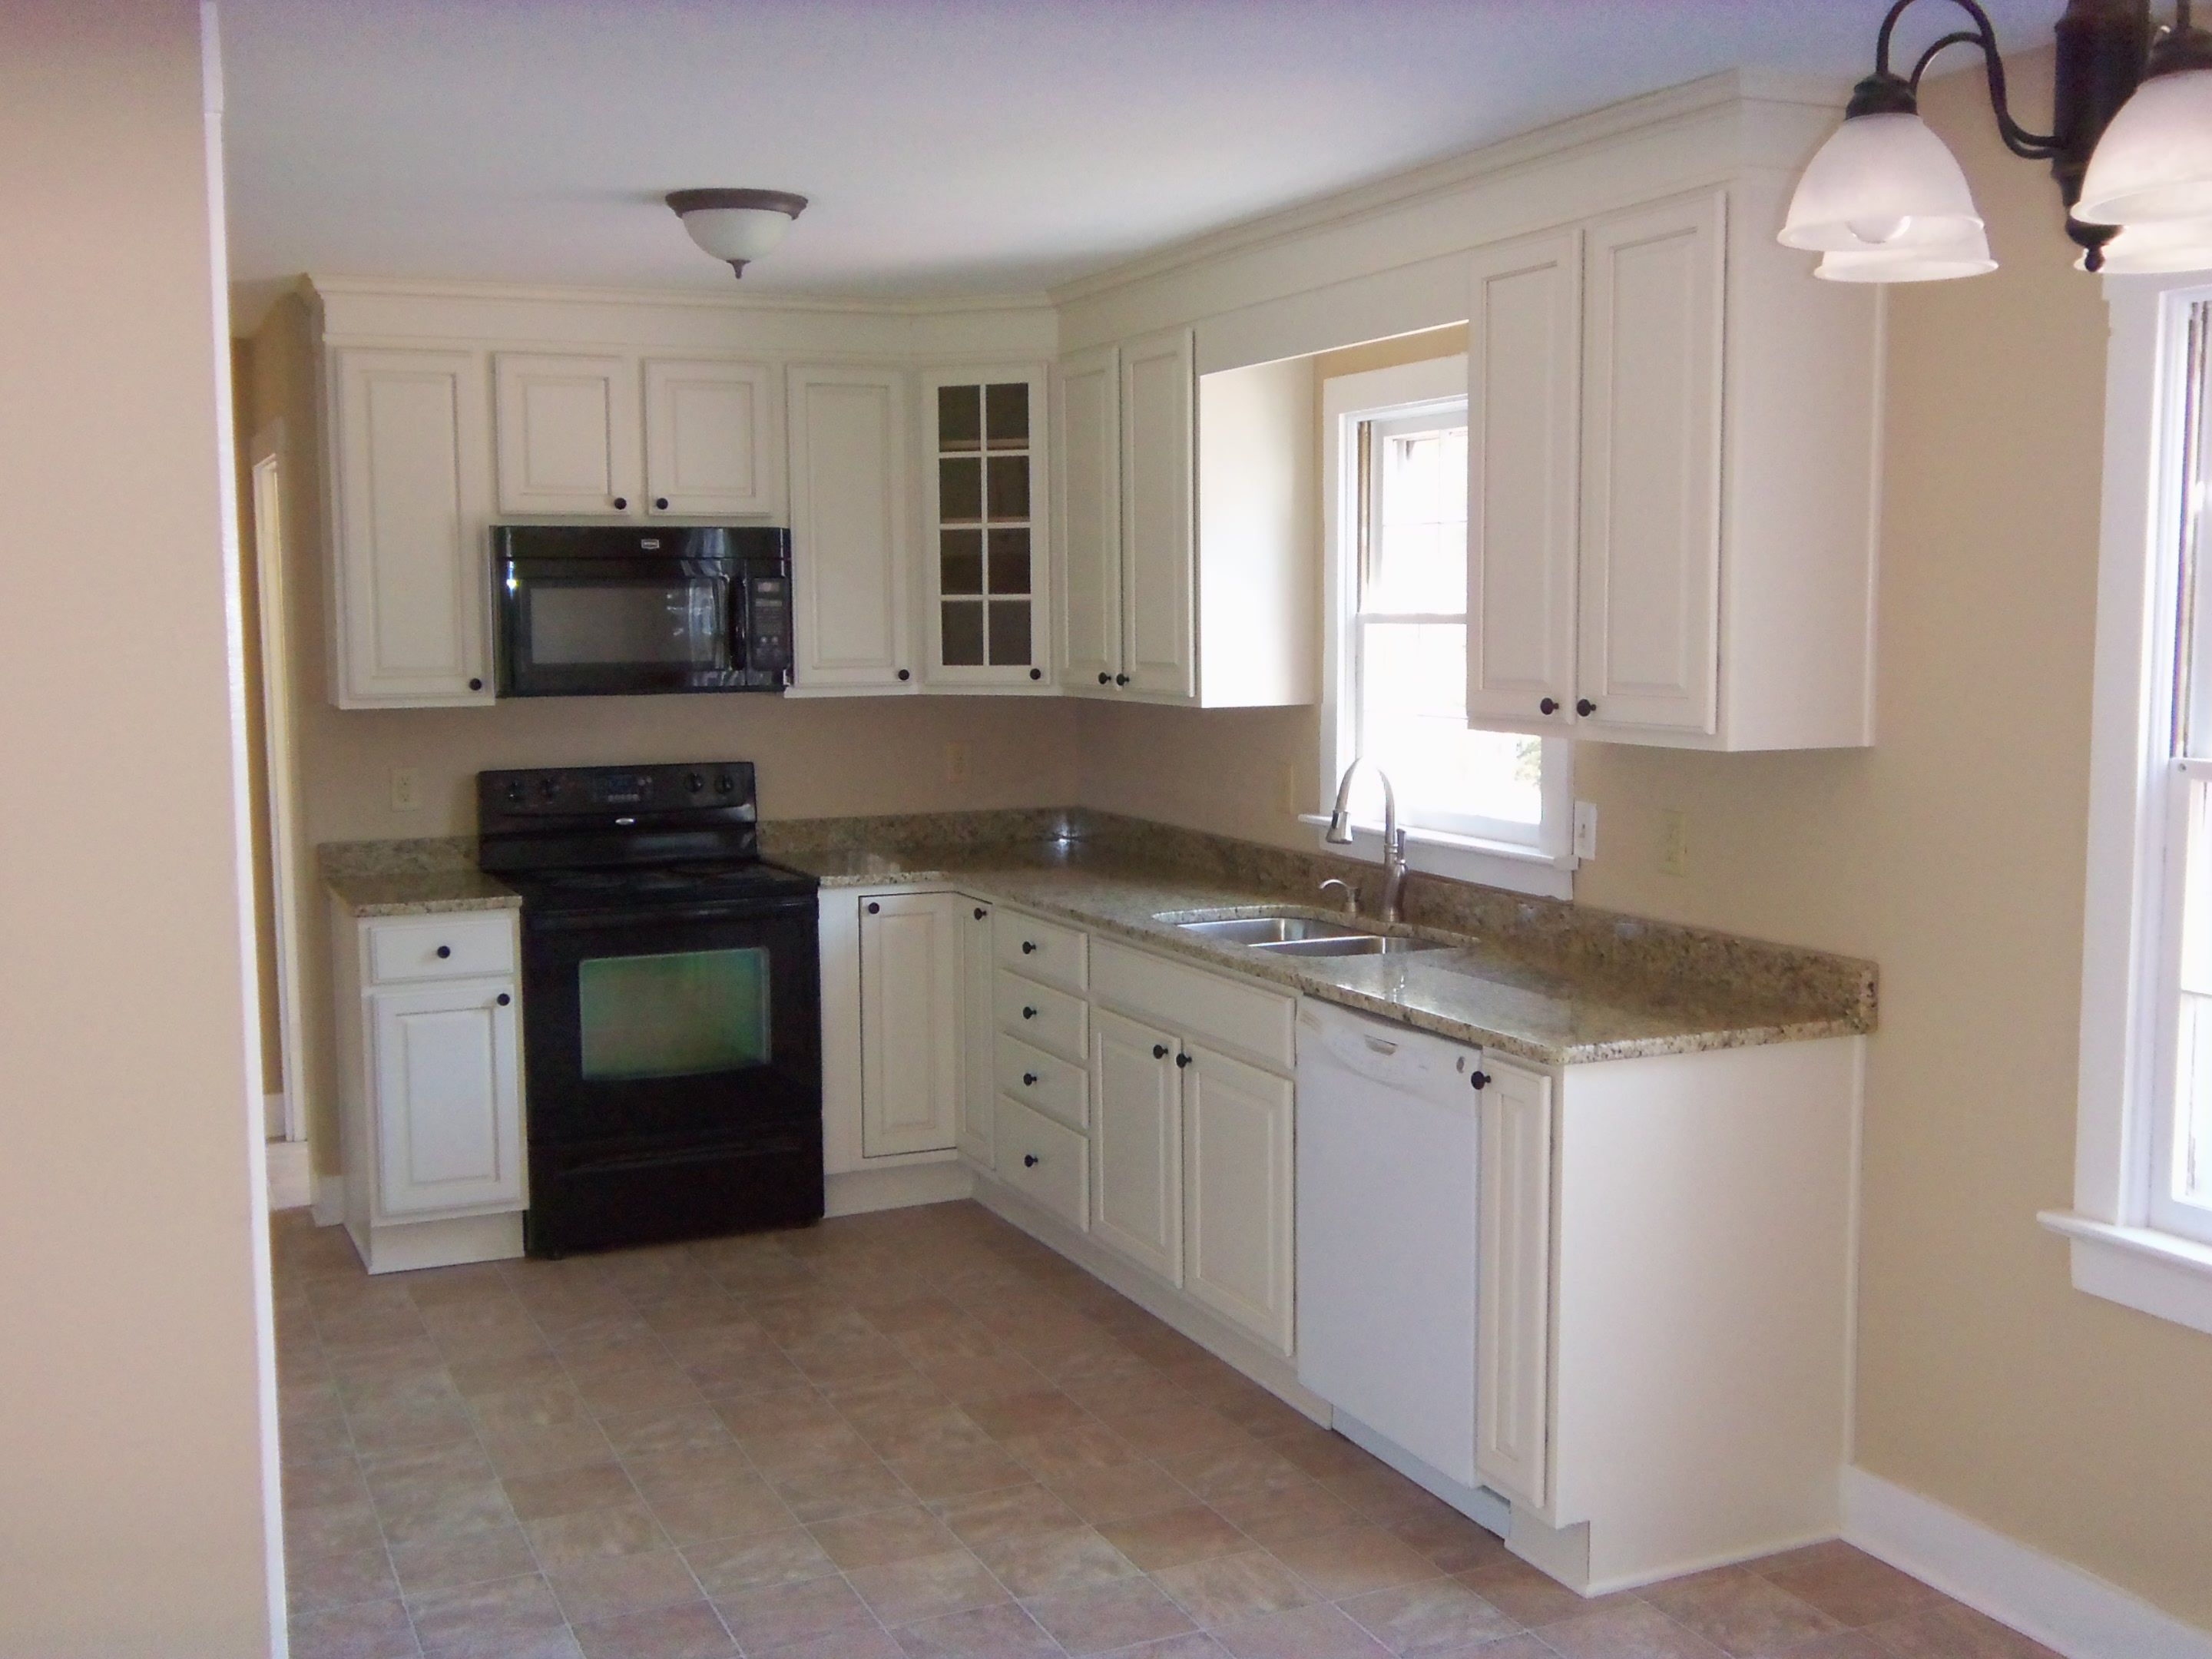 l shaped kitchen counter decor click to find out more simple kitchen design small kitchen on l kitchen remodel id=52679